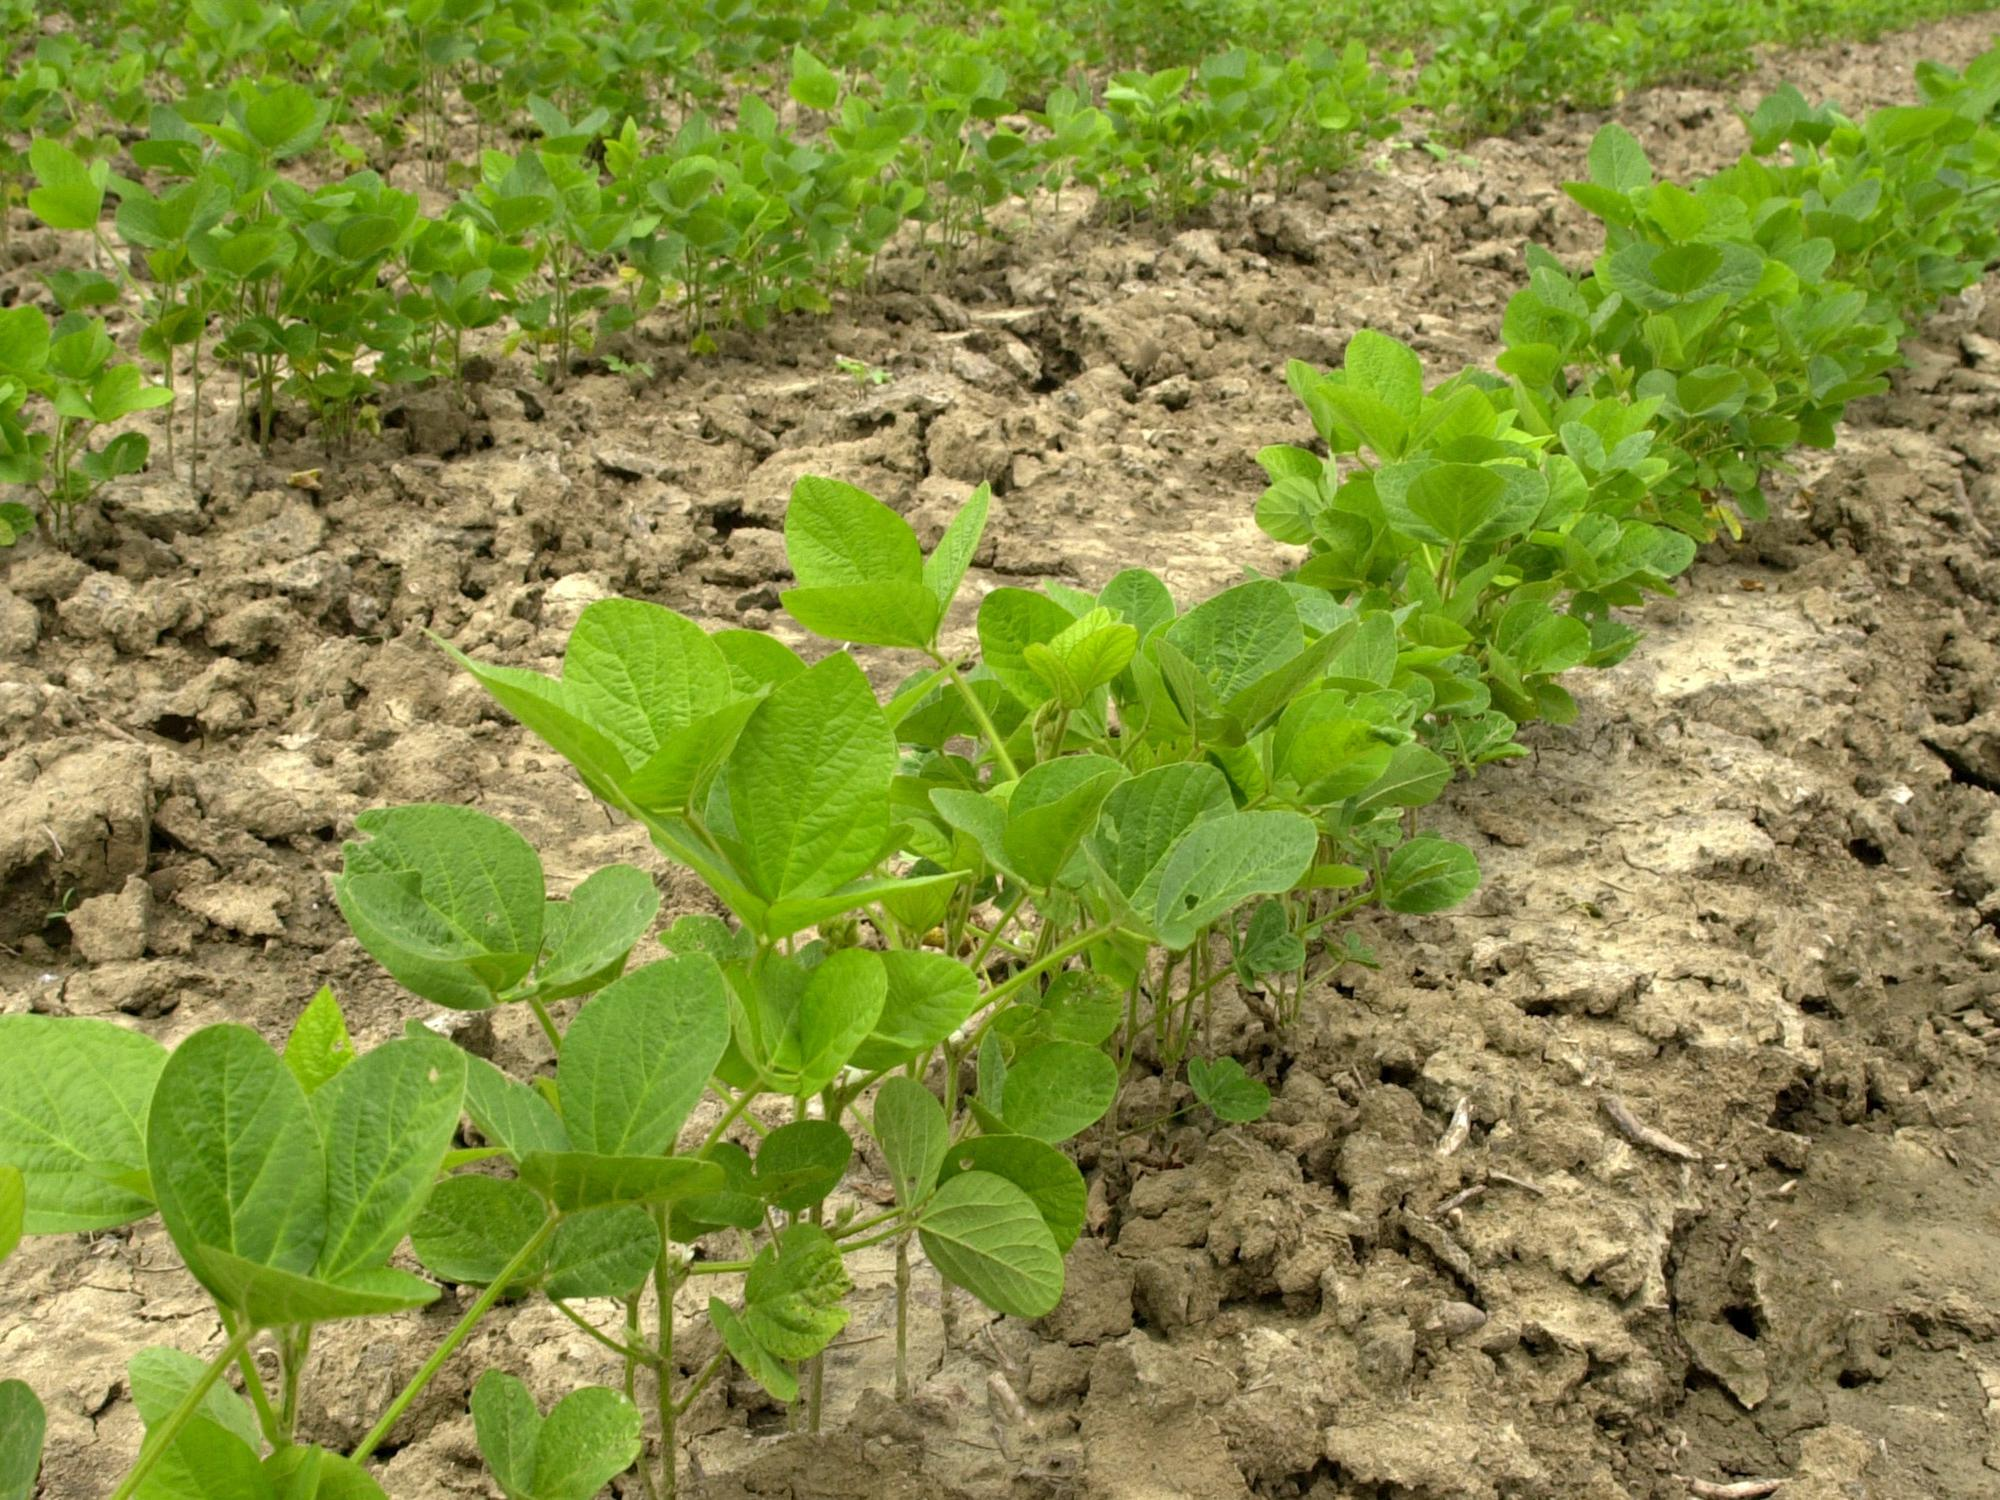 A week of mostly good planting weather helped growers make progress planting the state's soybean crop. By May 26, about 32 percent had emerged. In a typical year, nearly 80 percent of the crop would be out of the ground. (File Photo by MSU Ag Communications/Marco Nicovich)